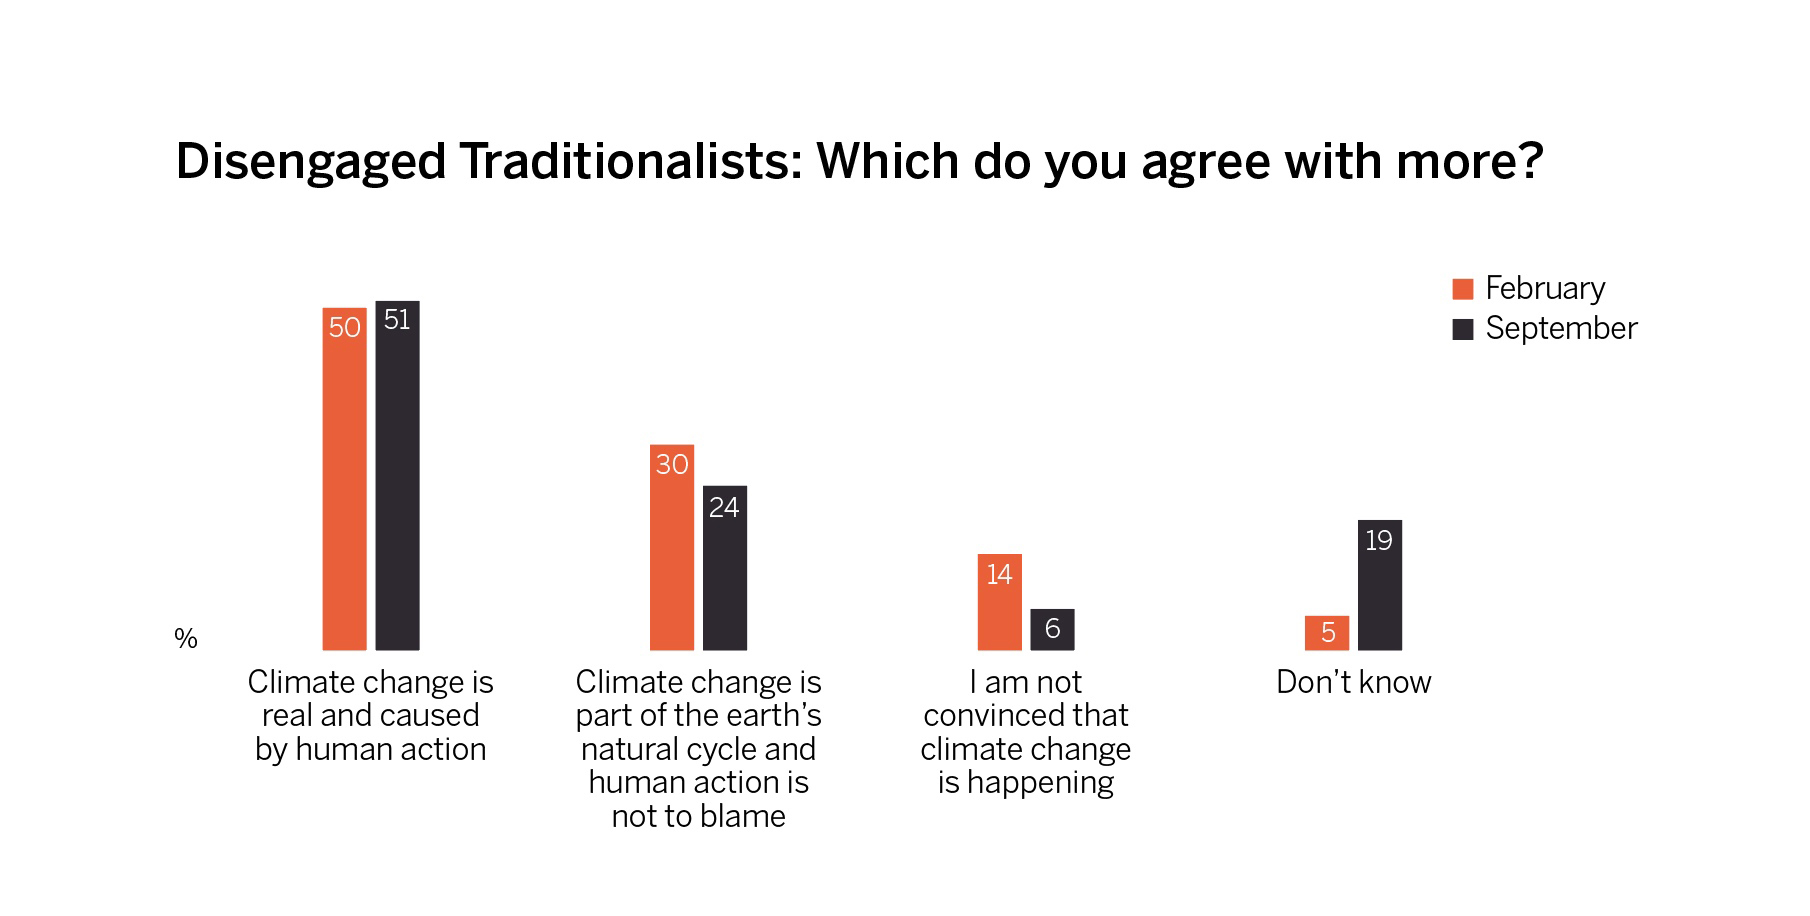 Disengaged Traditionalists' understanding of causes of climate change, in February and September